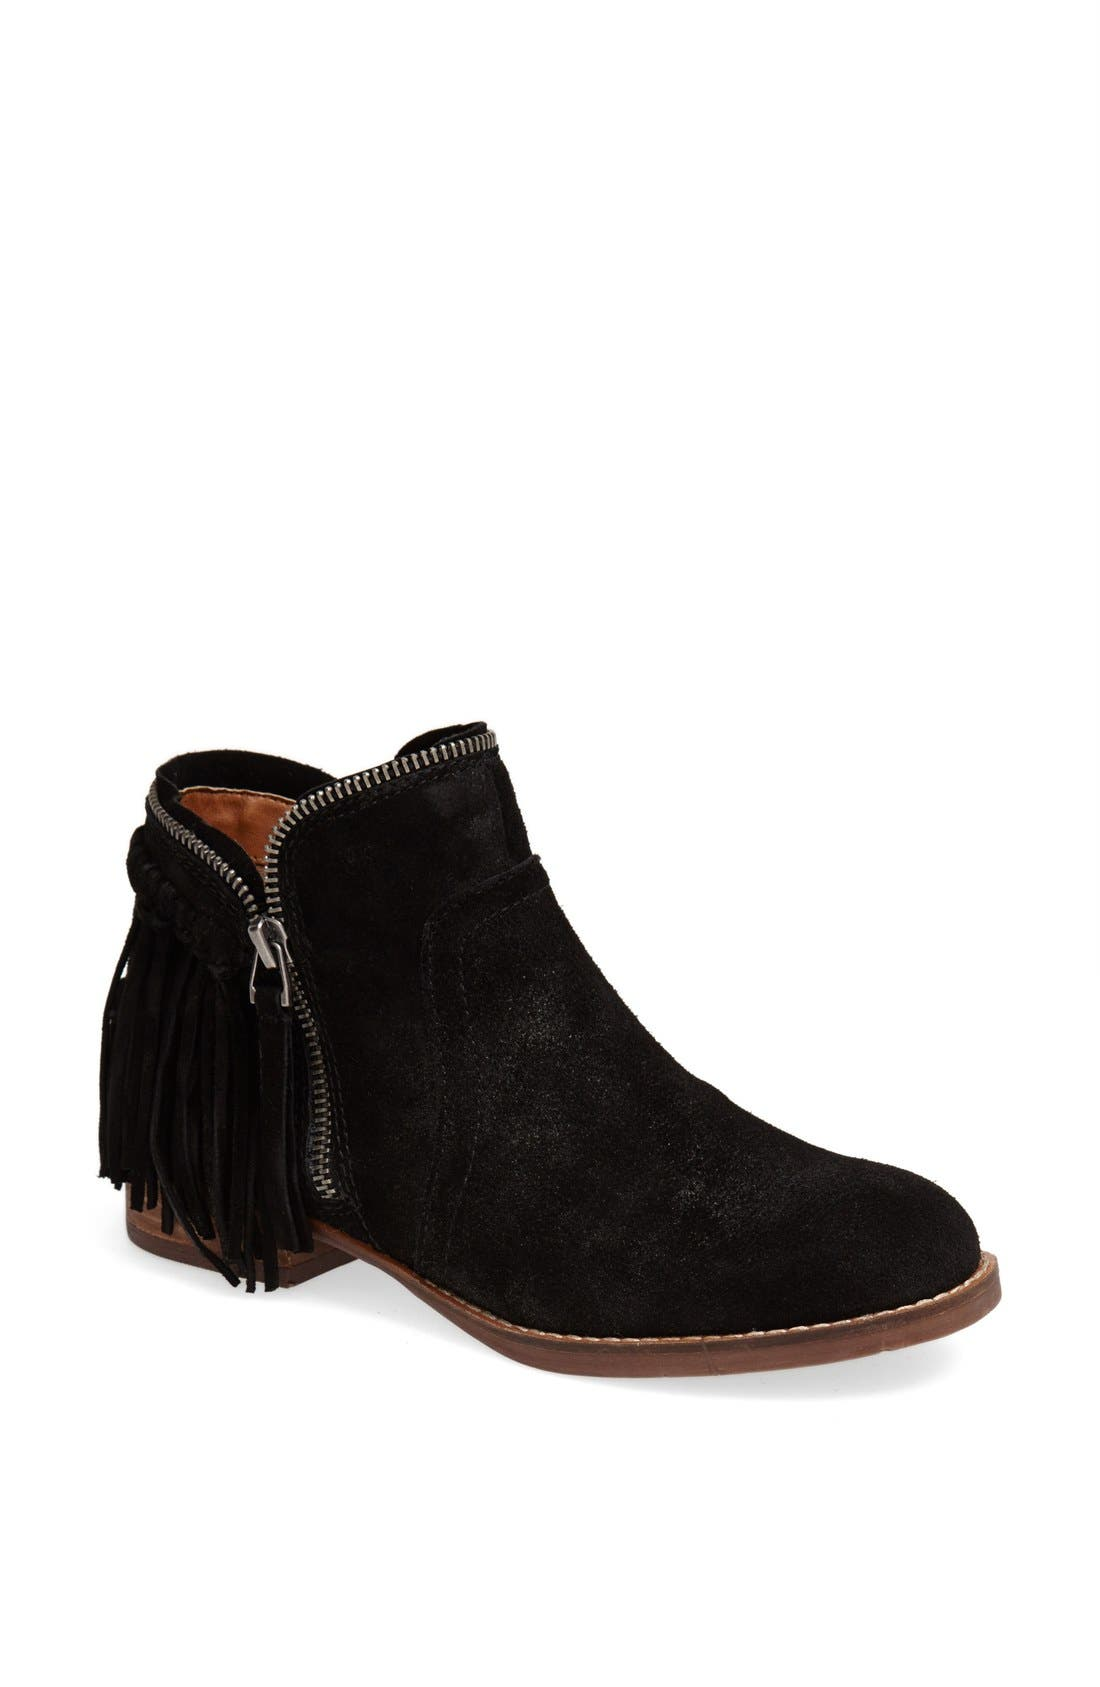 Alternate Image 1 Selected - DV Footwear 'Fisher' Bootie